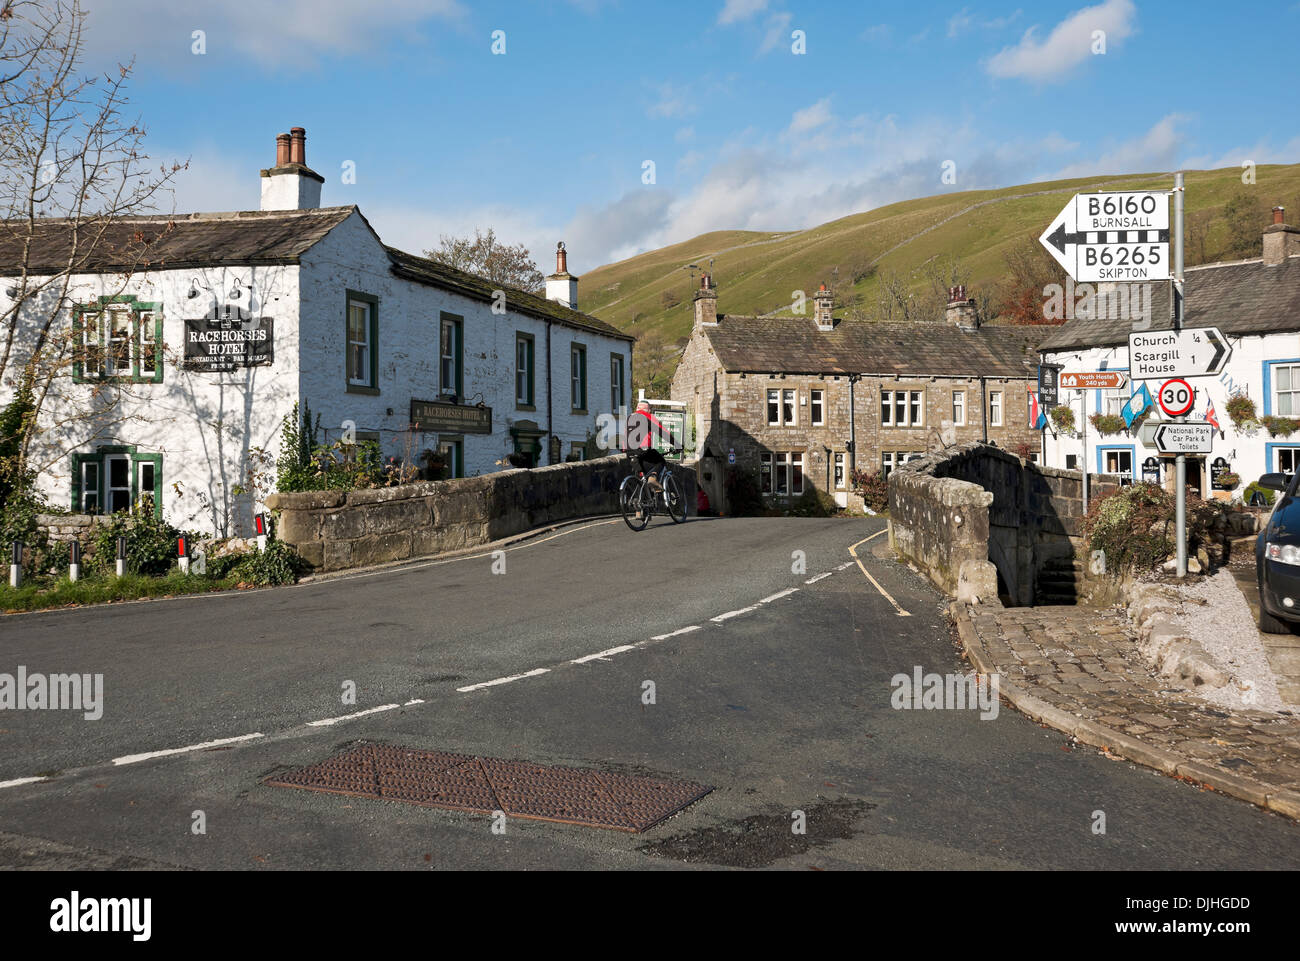 Kettlewell Yorkshire Dales North Yorkshire England UK United Kingdom GB Great Britain - Stock Image